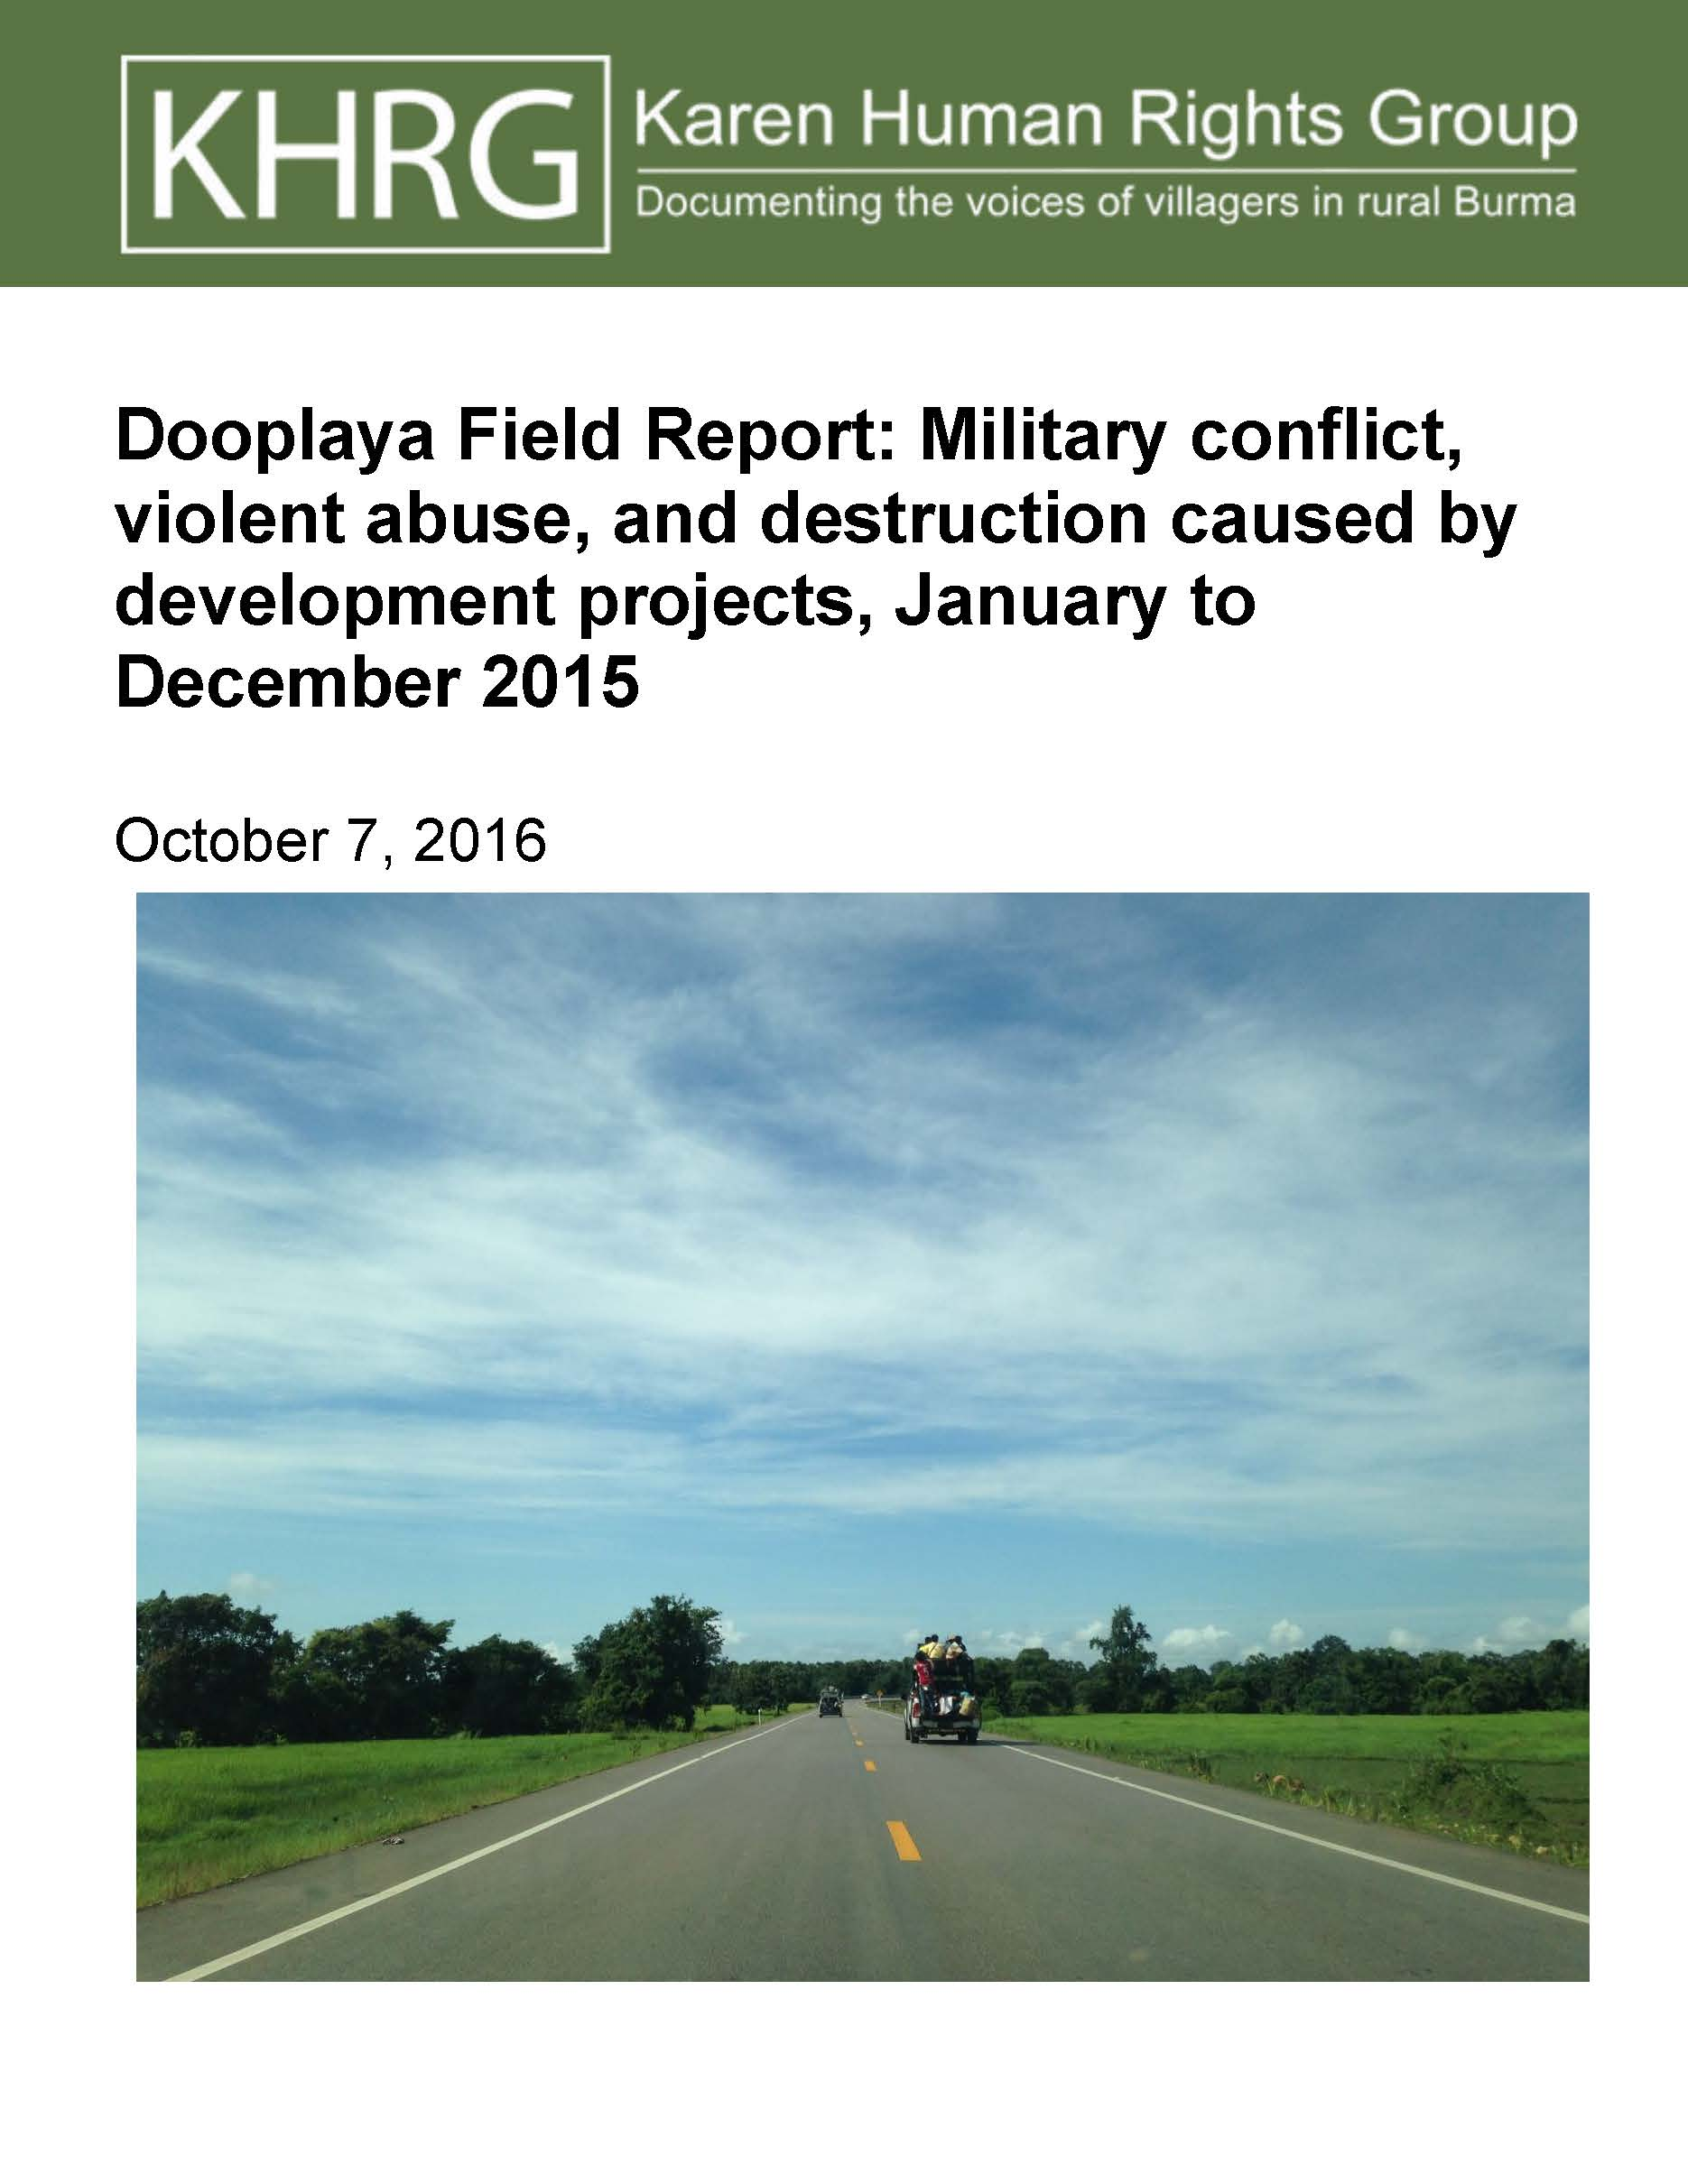 Dooplaya Field Report: Military conflict, violent abuse, and